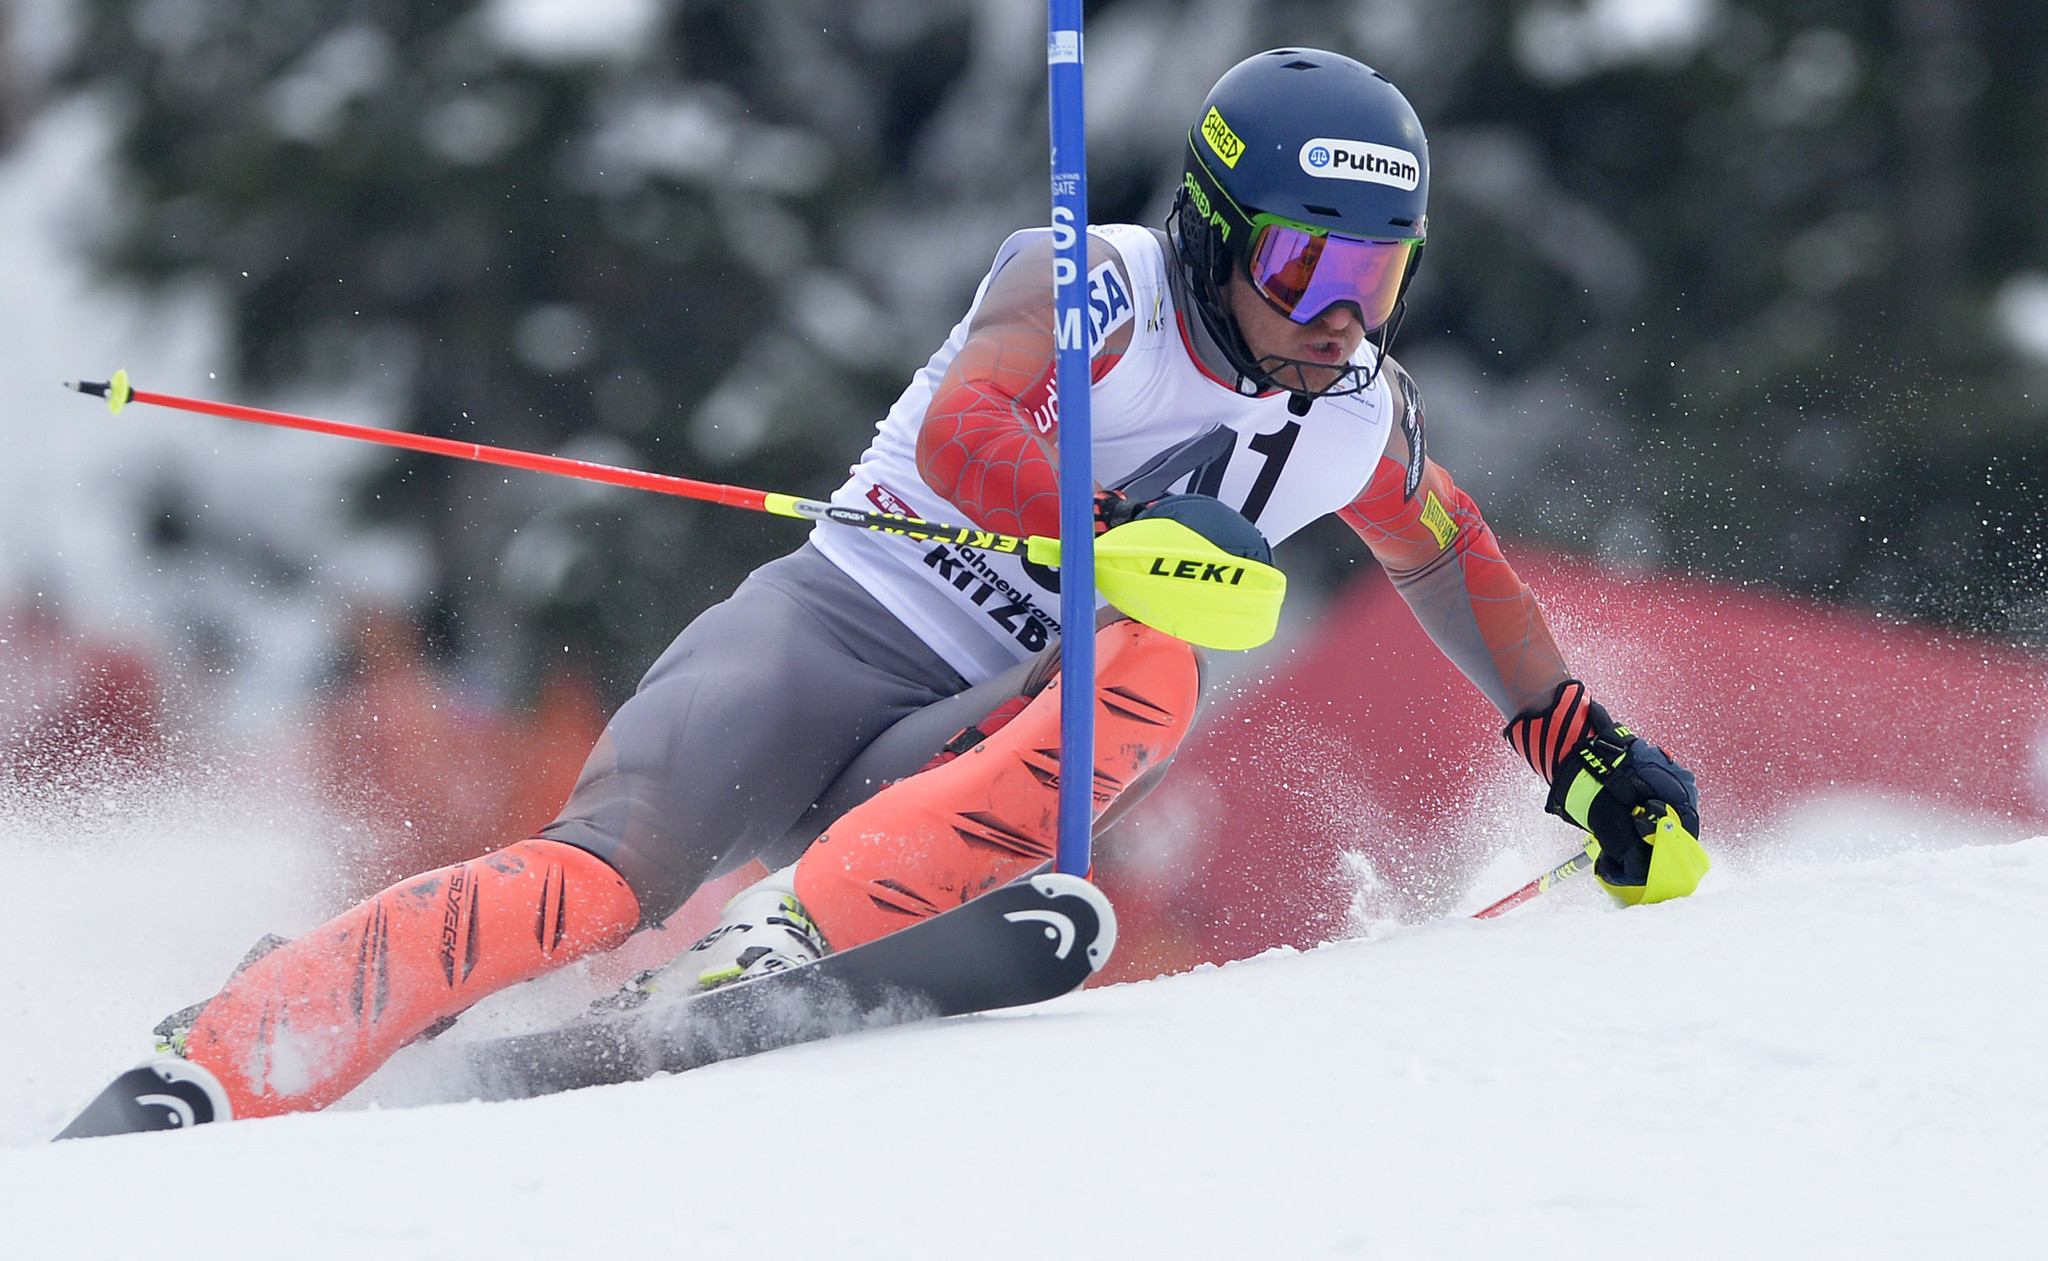 Olympic Skiing Champion Ted Ligety Injures Knee In